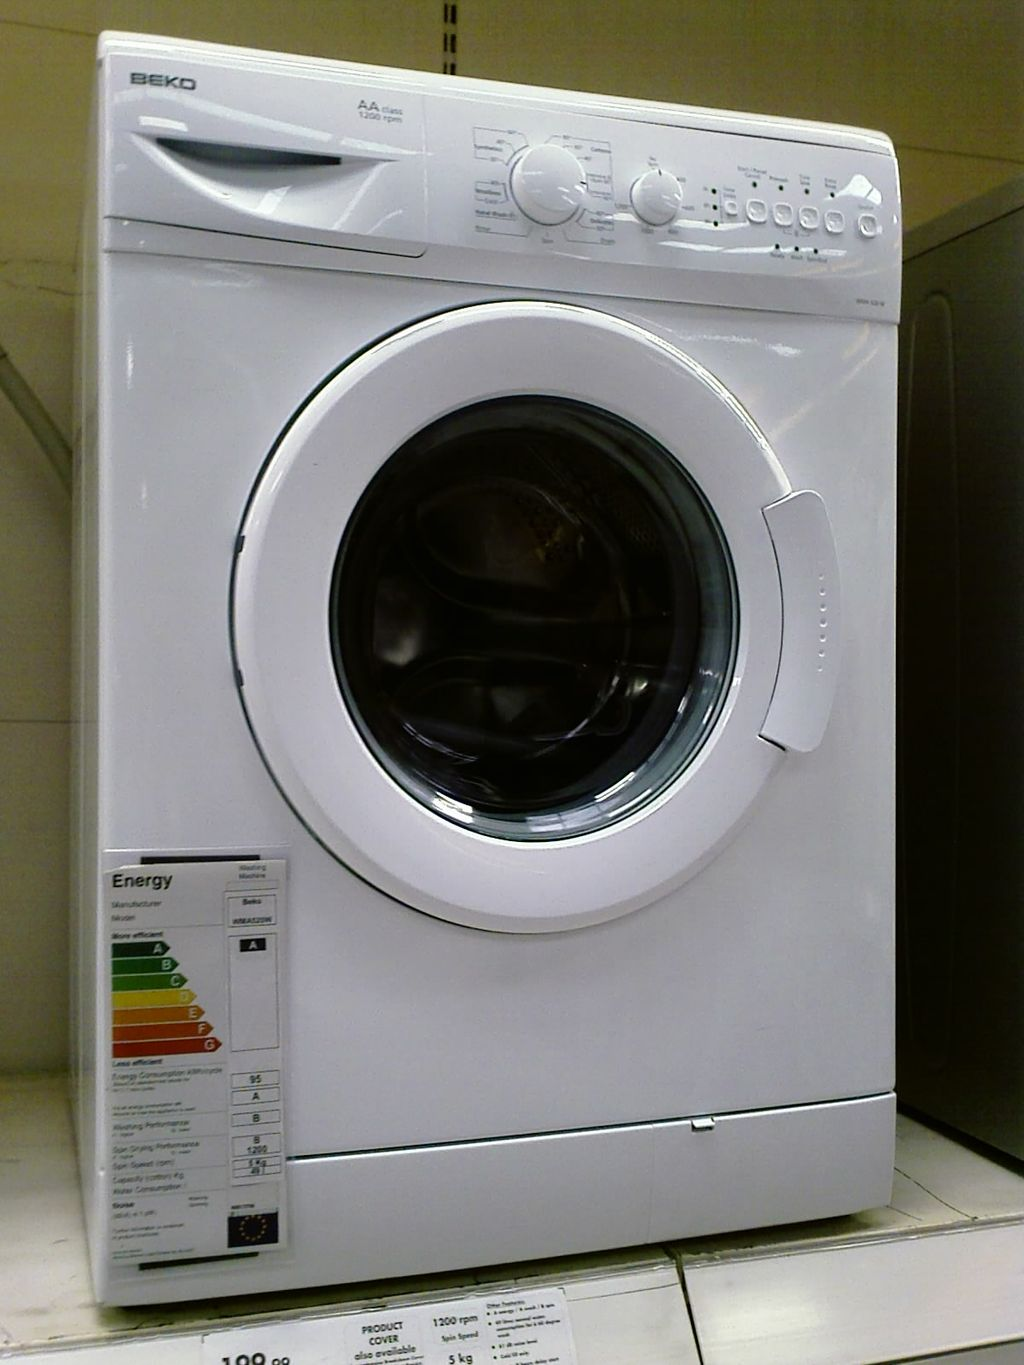 How can you get more out of your washing machine? ... photo by CC user 89618128@N00 on Flickr